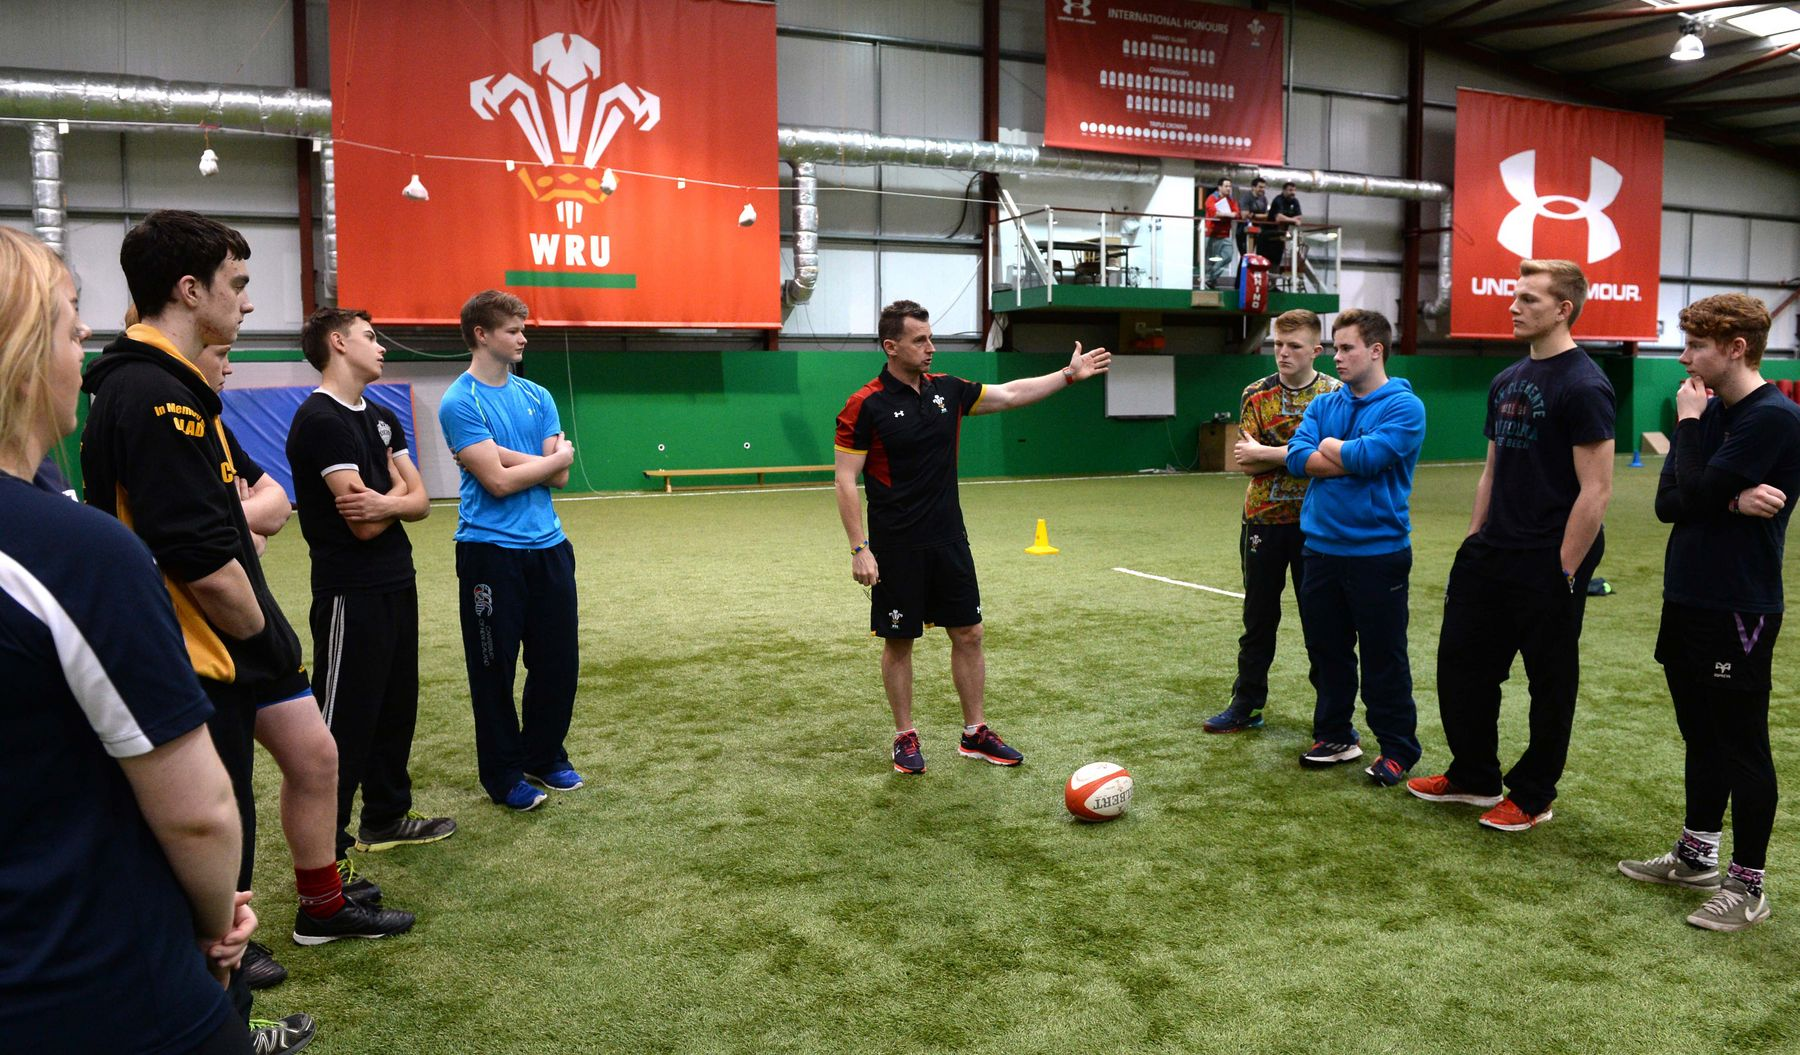 Nigel Owens goes back to school to inspire future referees